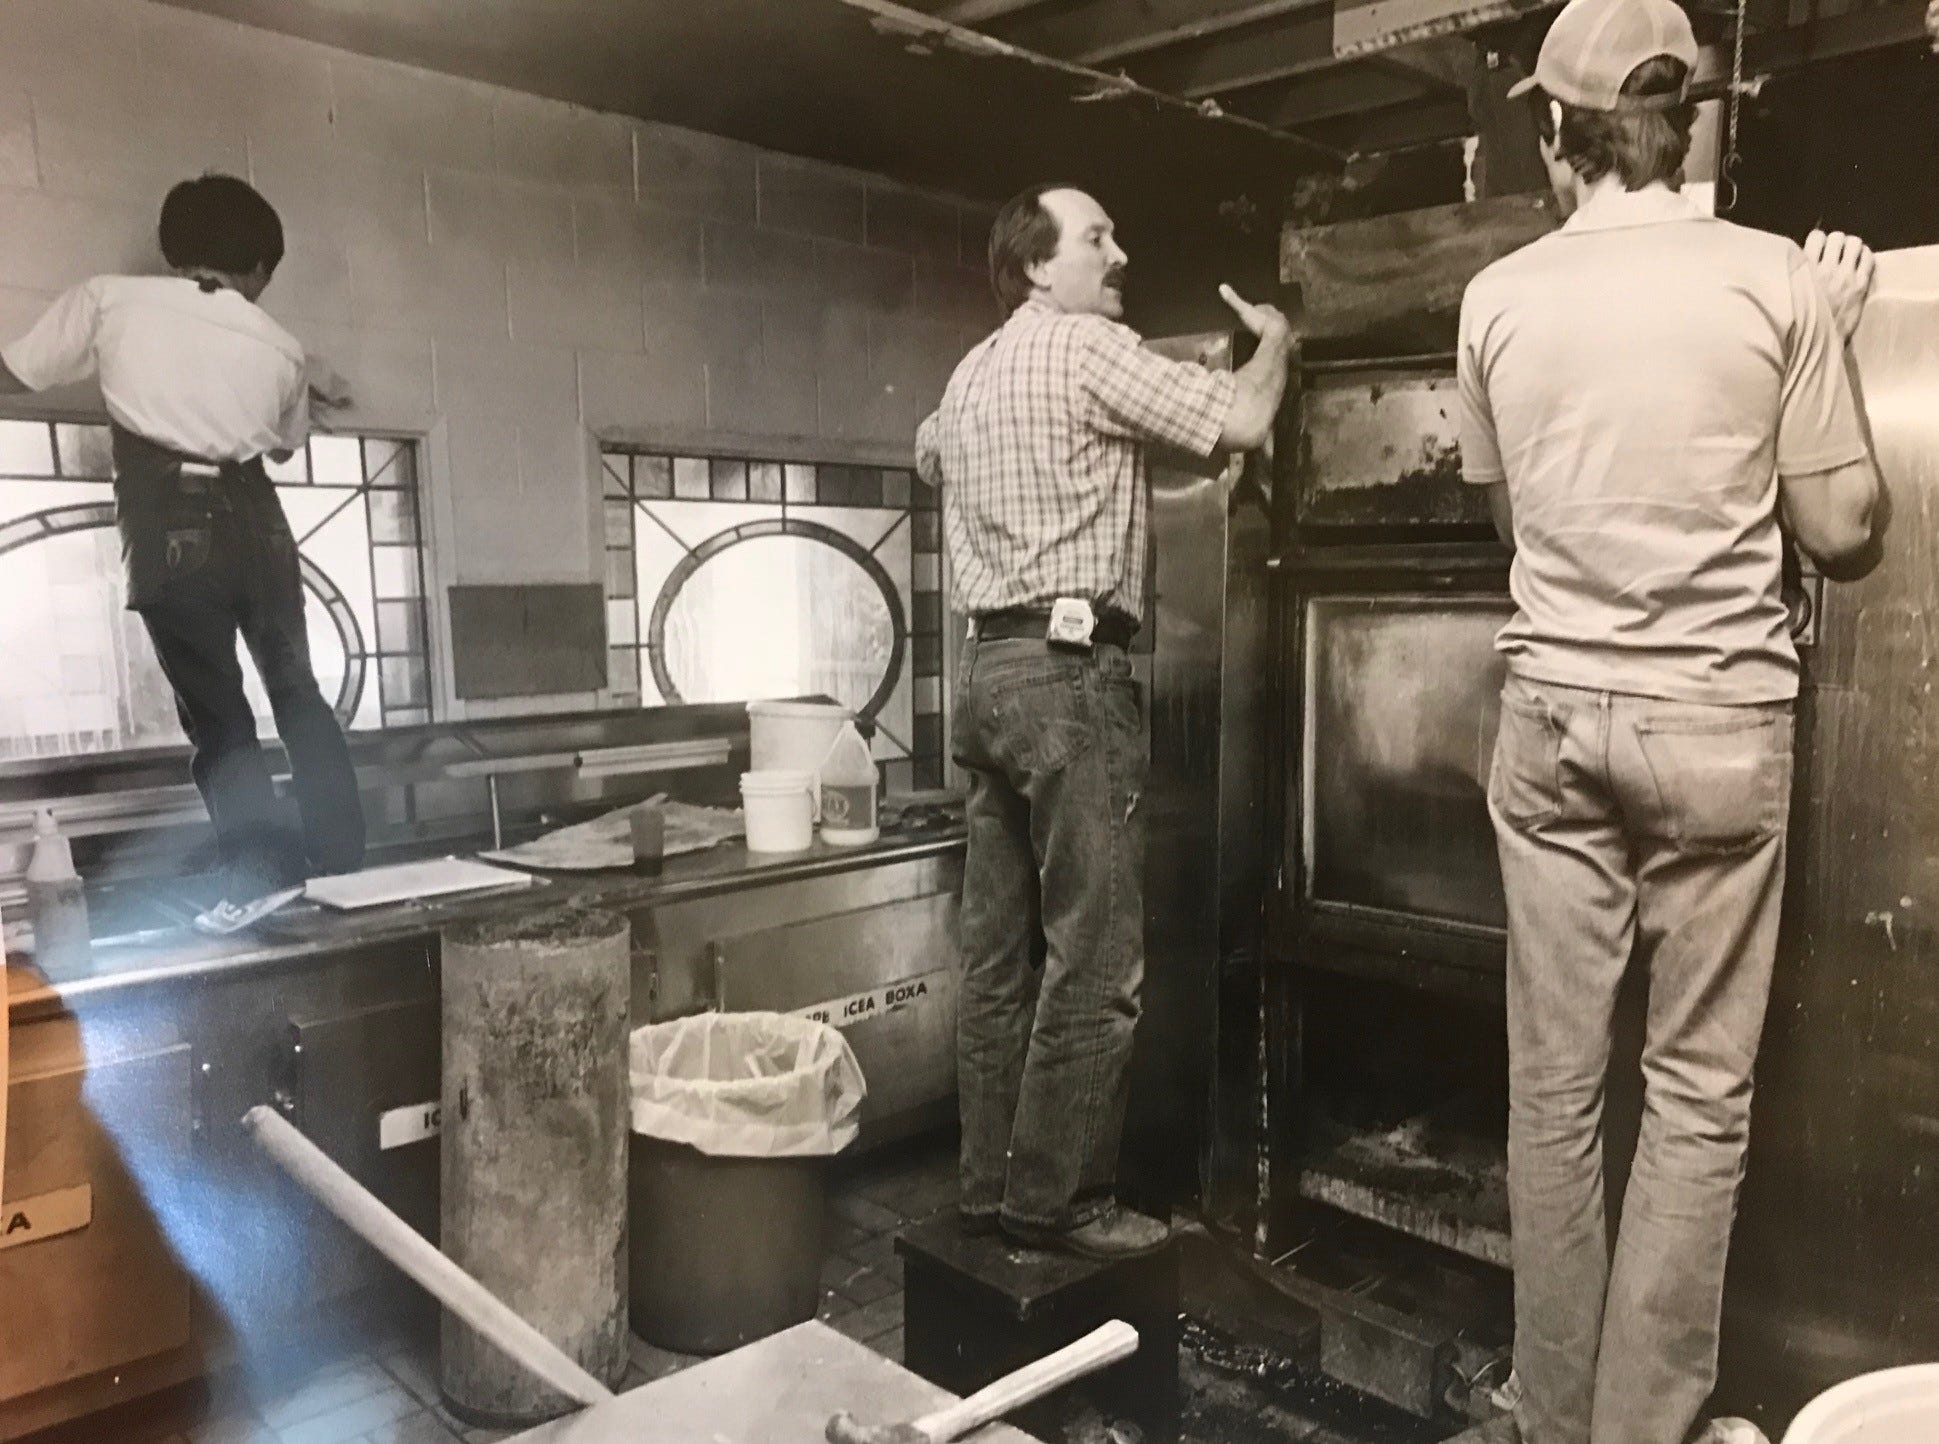 Shakey's Pizza owner John Dean, center, surveys the damage to an oven after a fire damaged the restaurant in March of 1983.